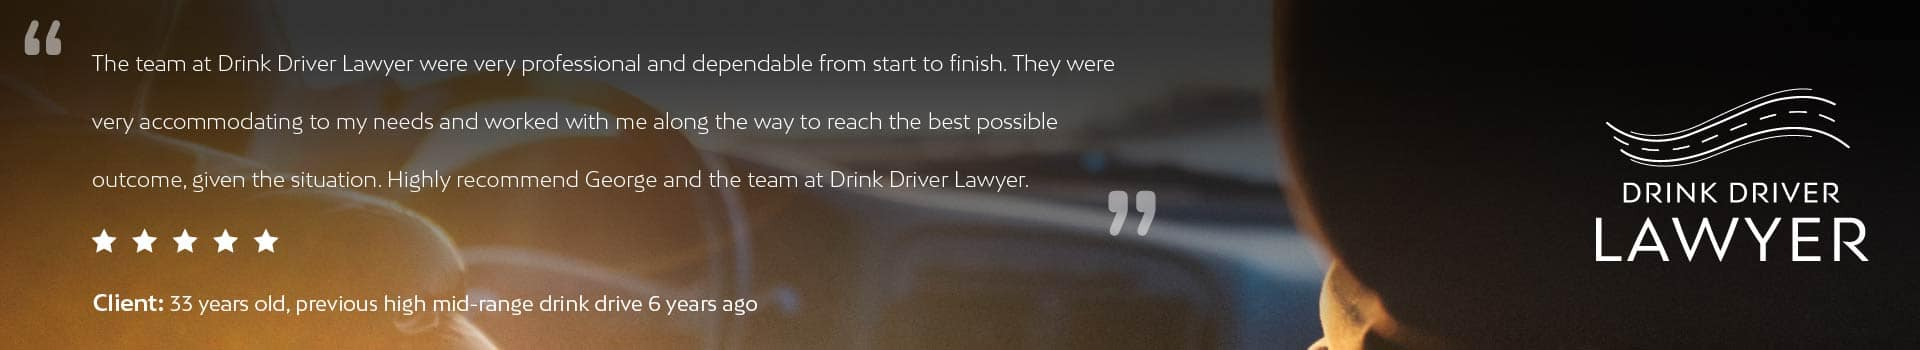 drink-driver-review-post-banner